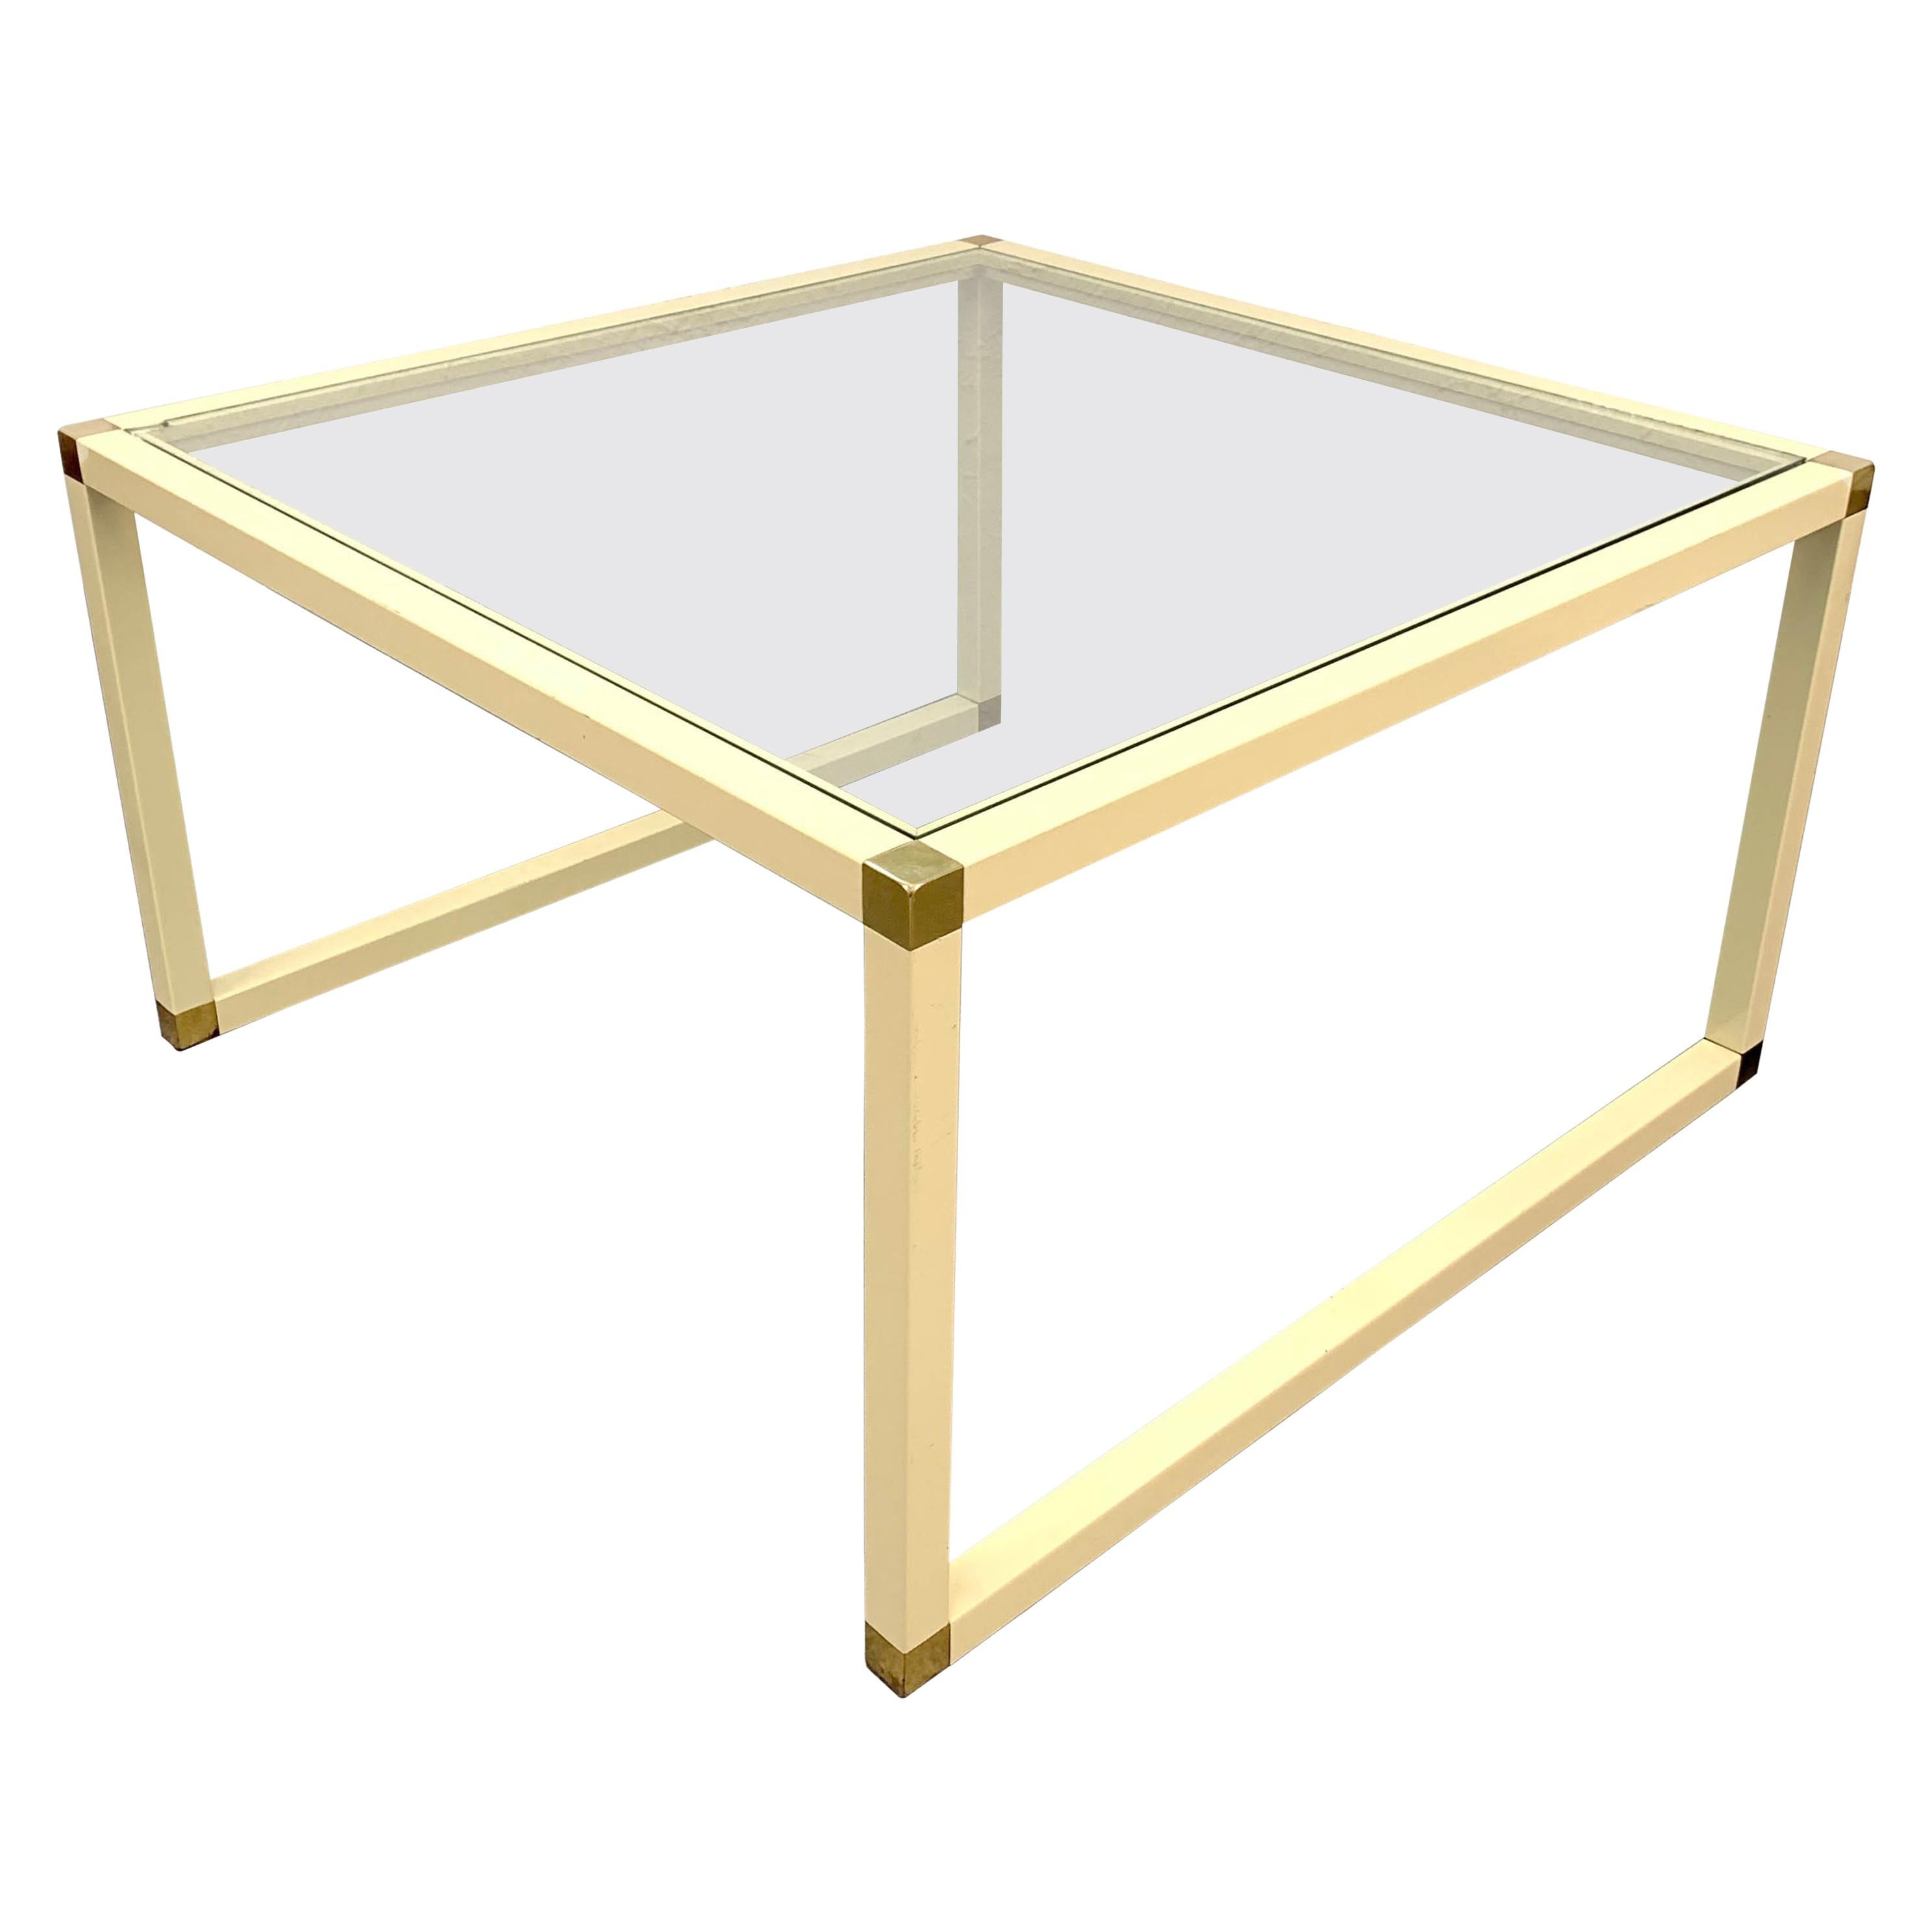 Tommaso Barbi Brass and Cream Enameled Metal Square Italian Coffee Table, 1970s